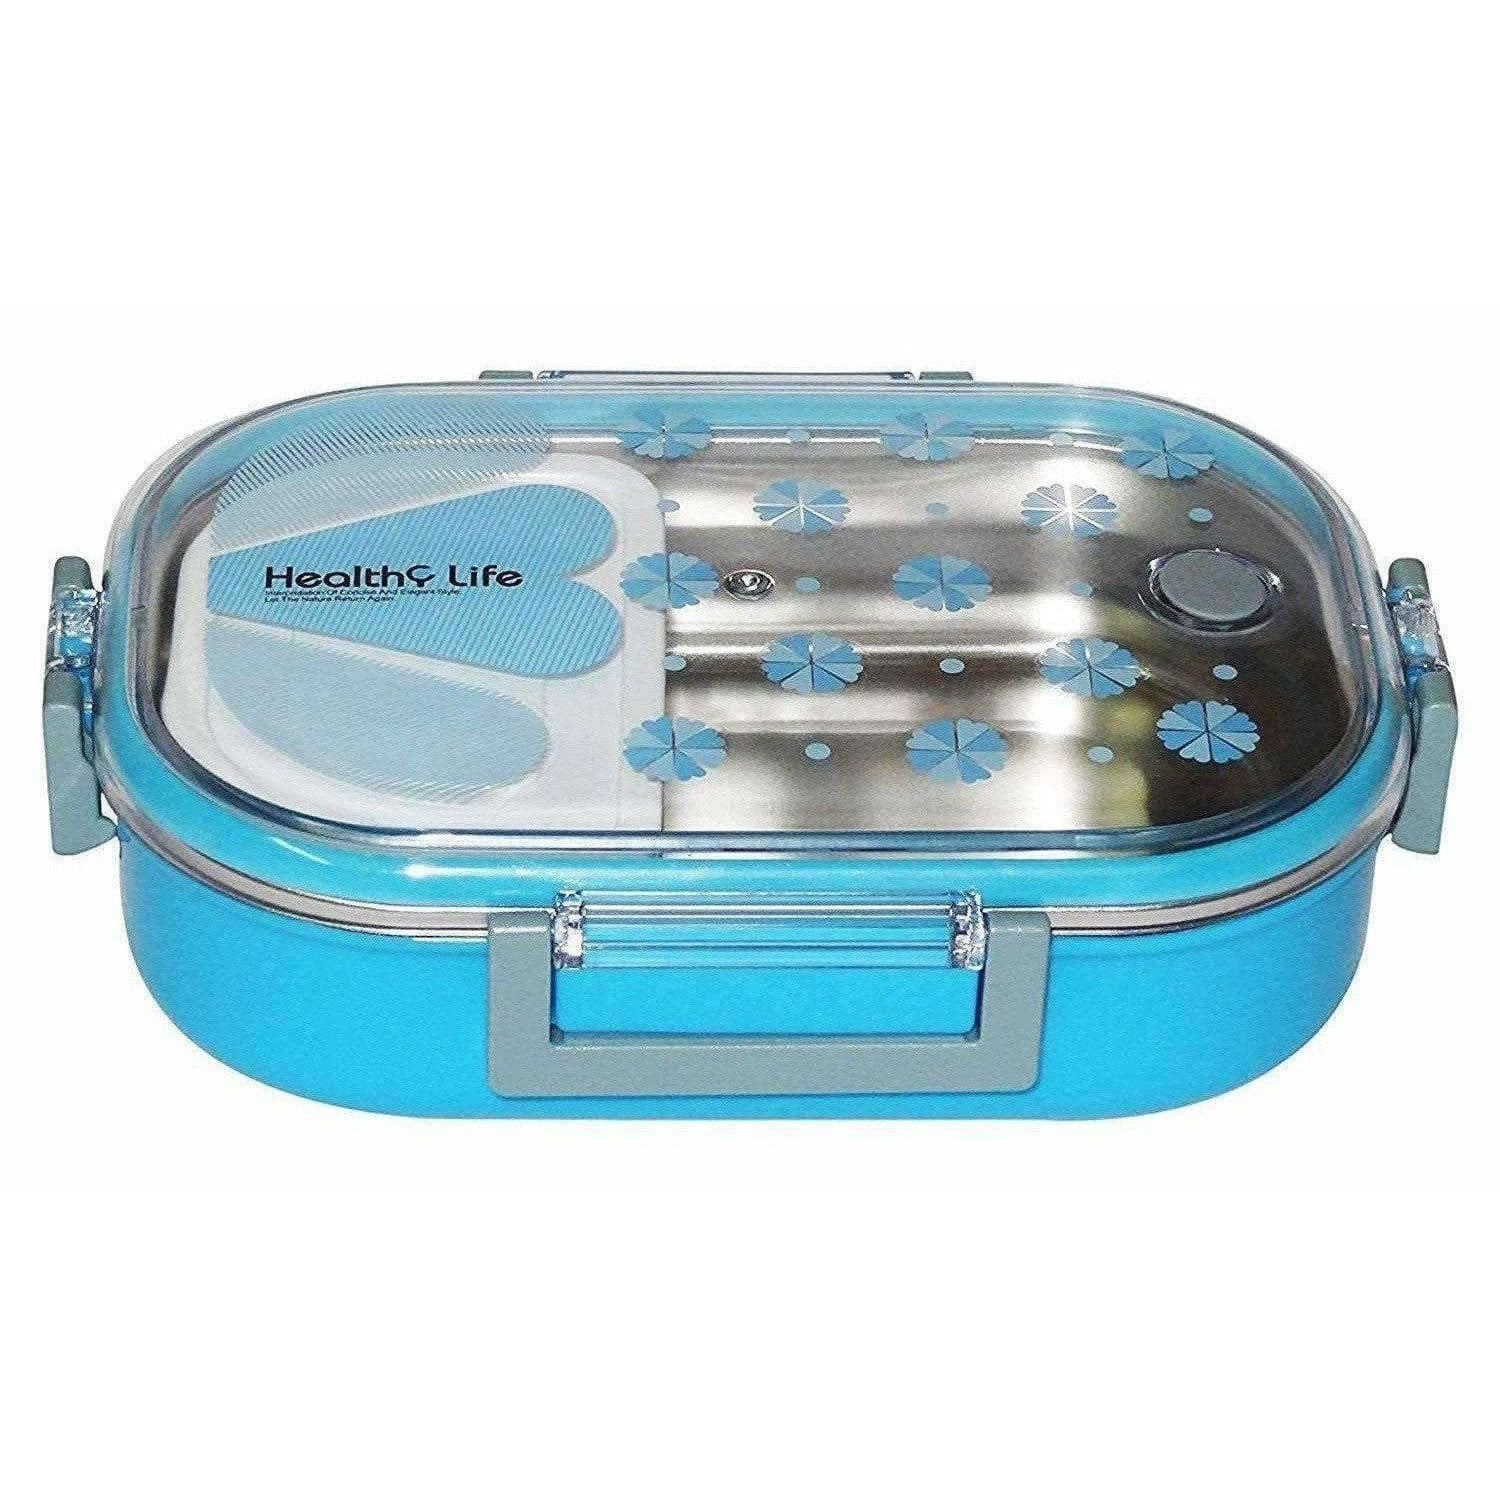 Stainless Steel Lunch Box 710 ml for Kids